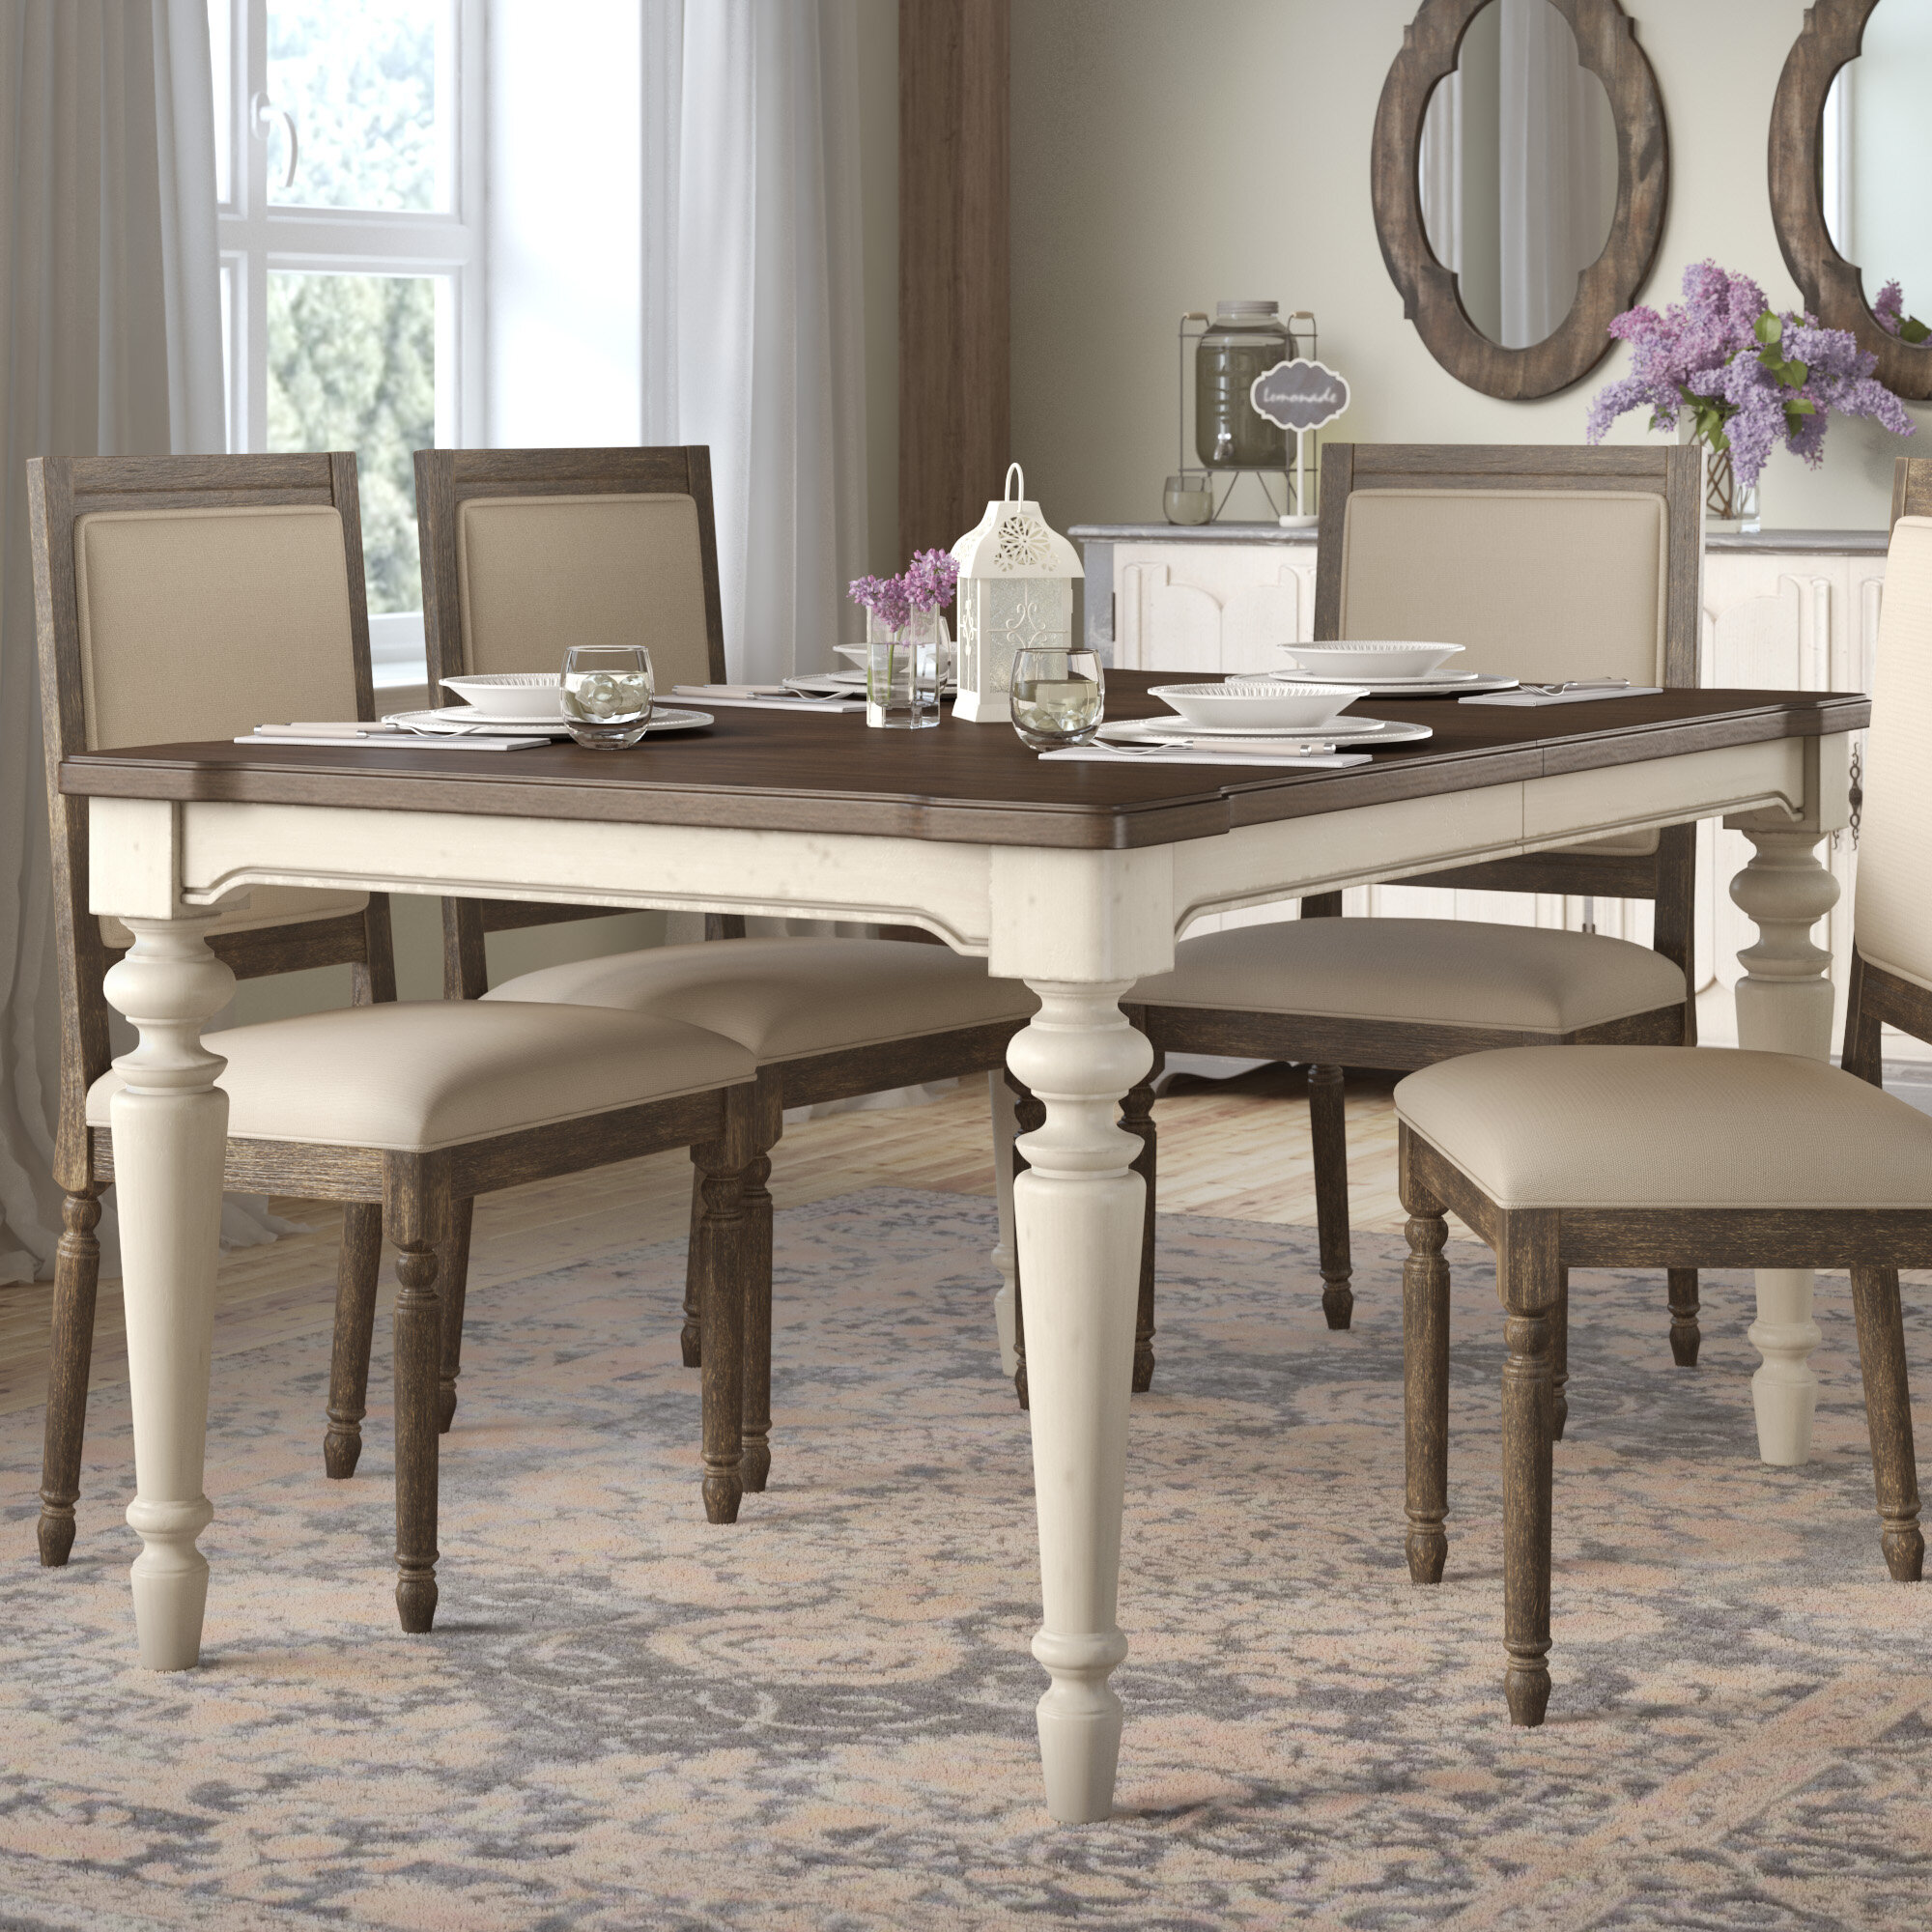 Lark manor ornithogale extendable dining table reviews wayfair